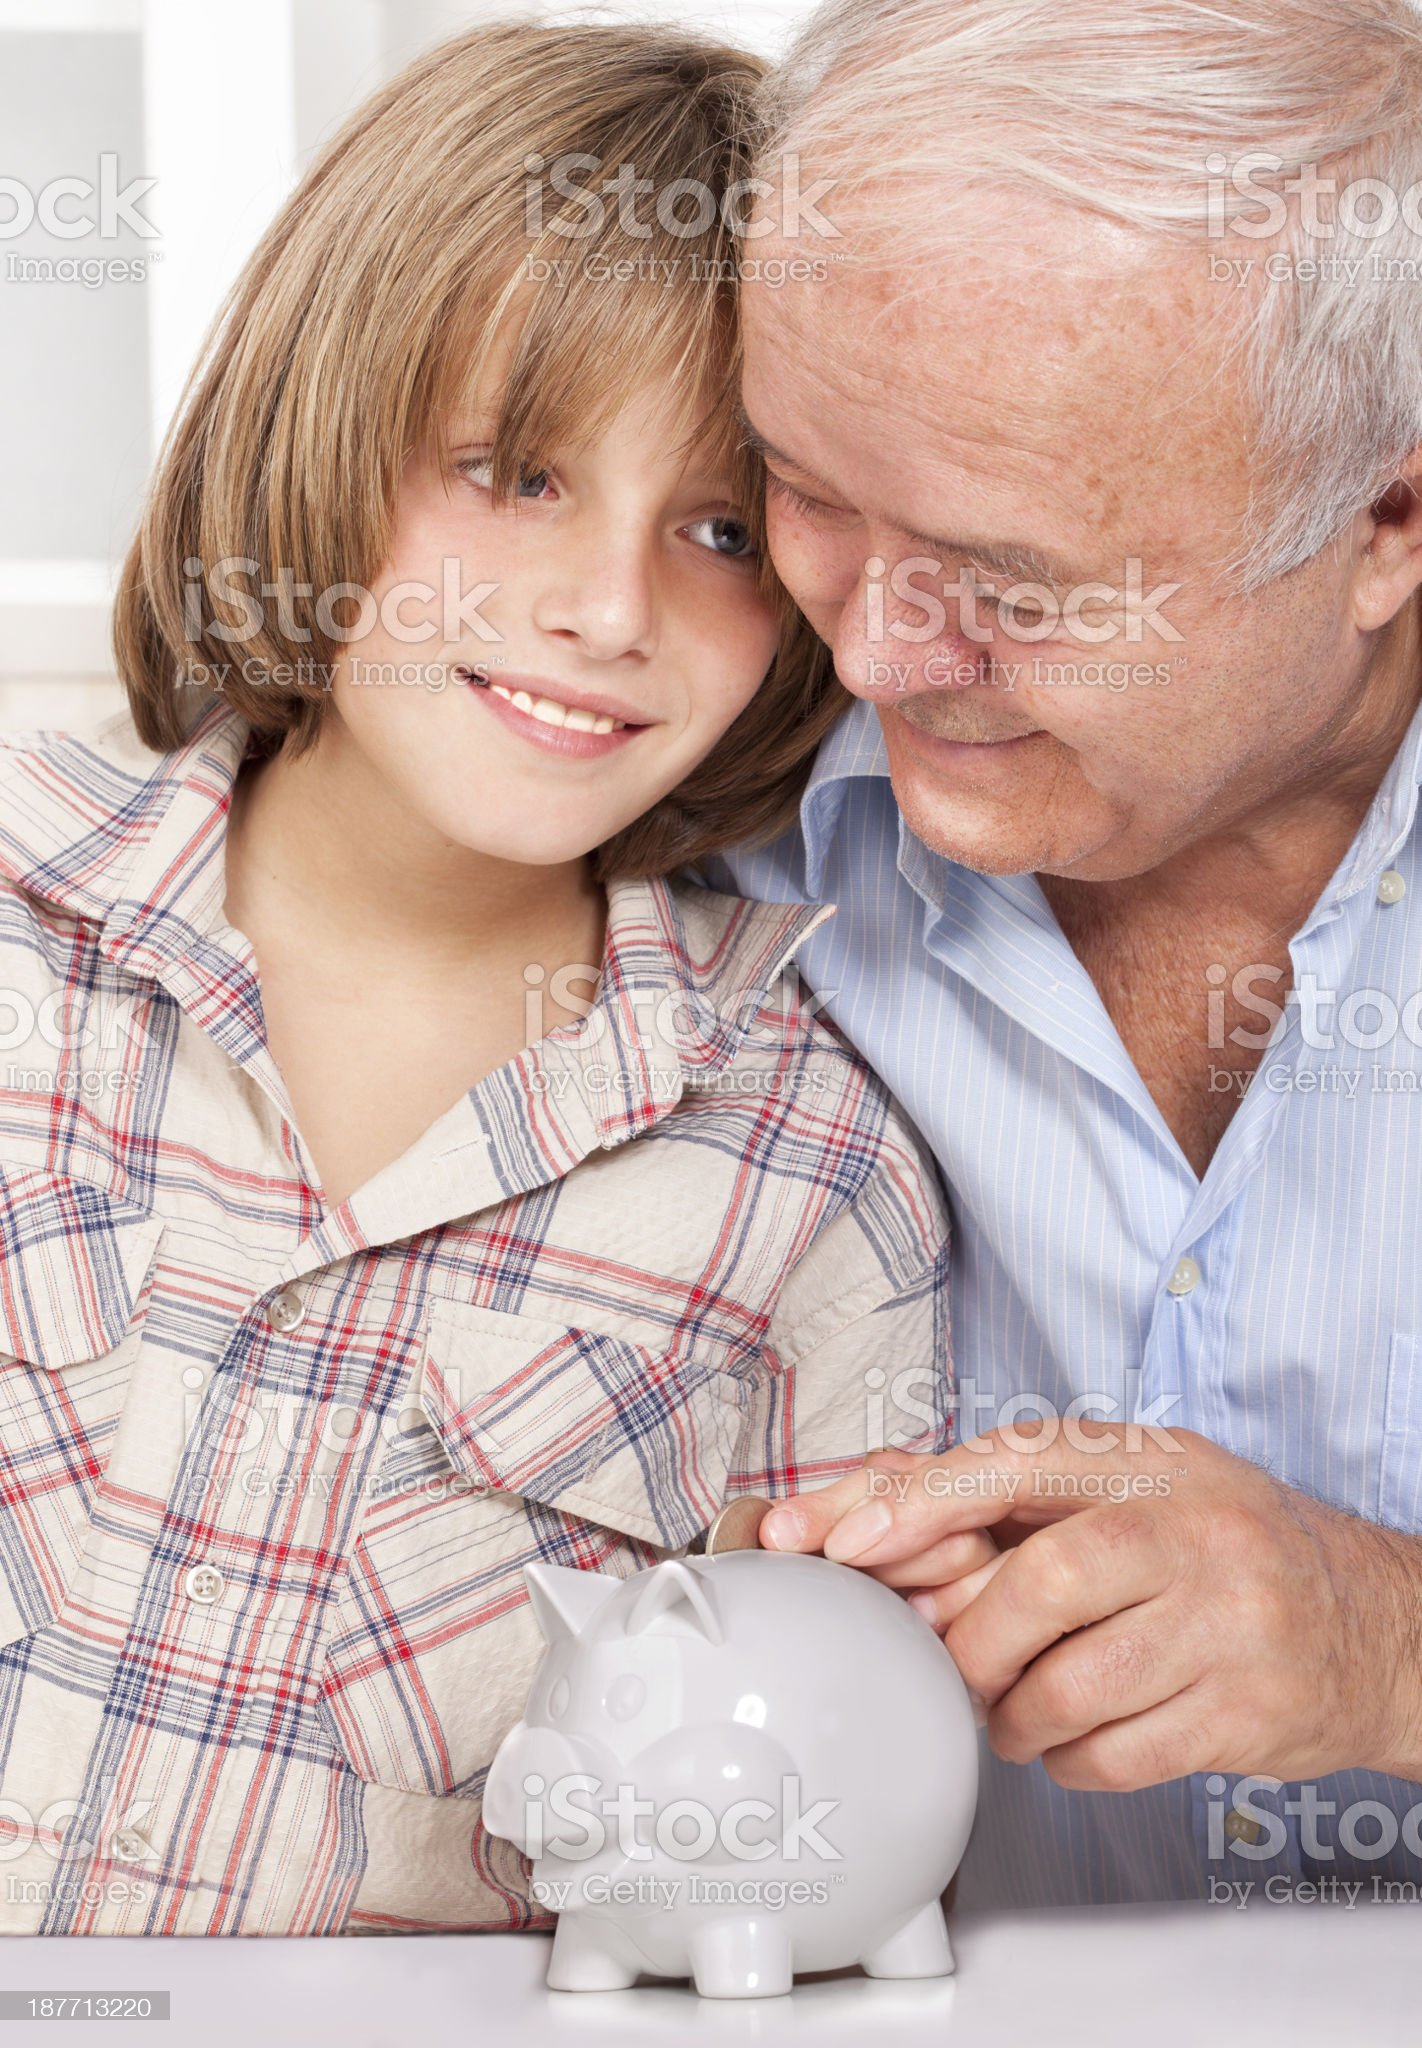 Grandparent teaching grandson to save money in a piggy bank royalty-free stock photo